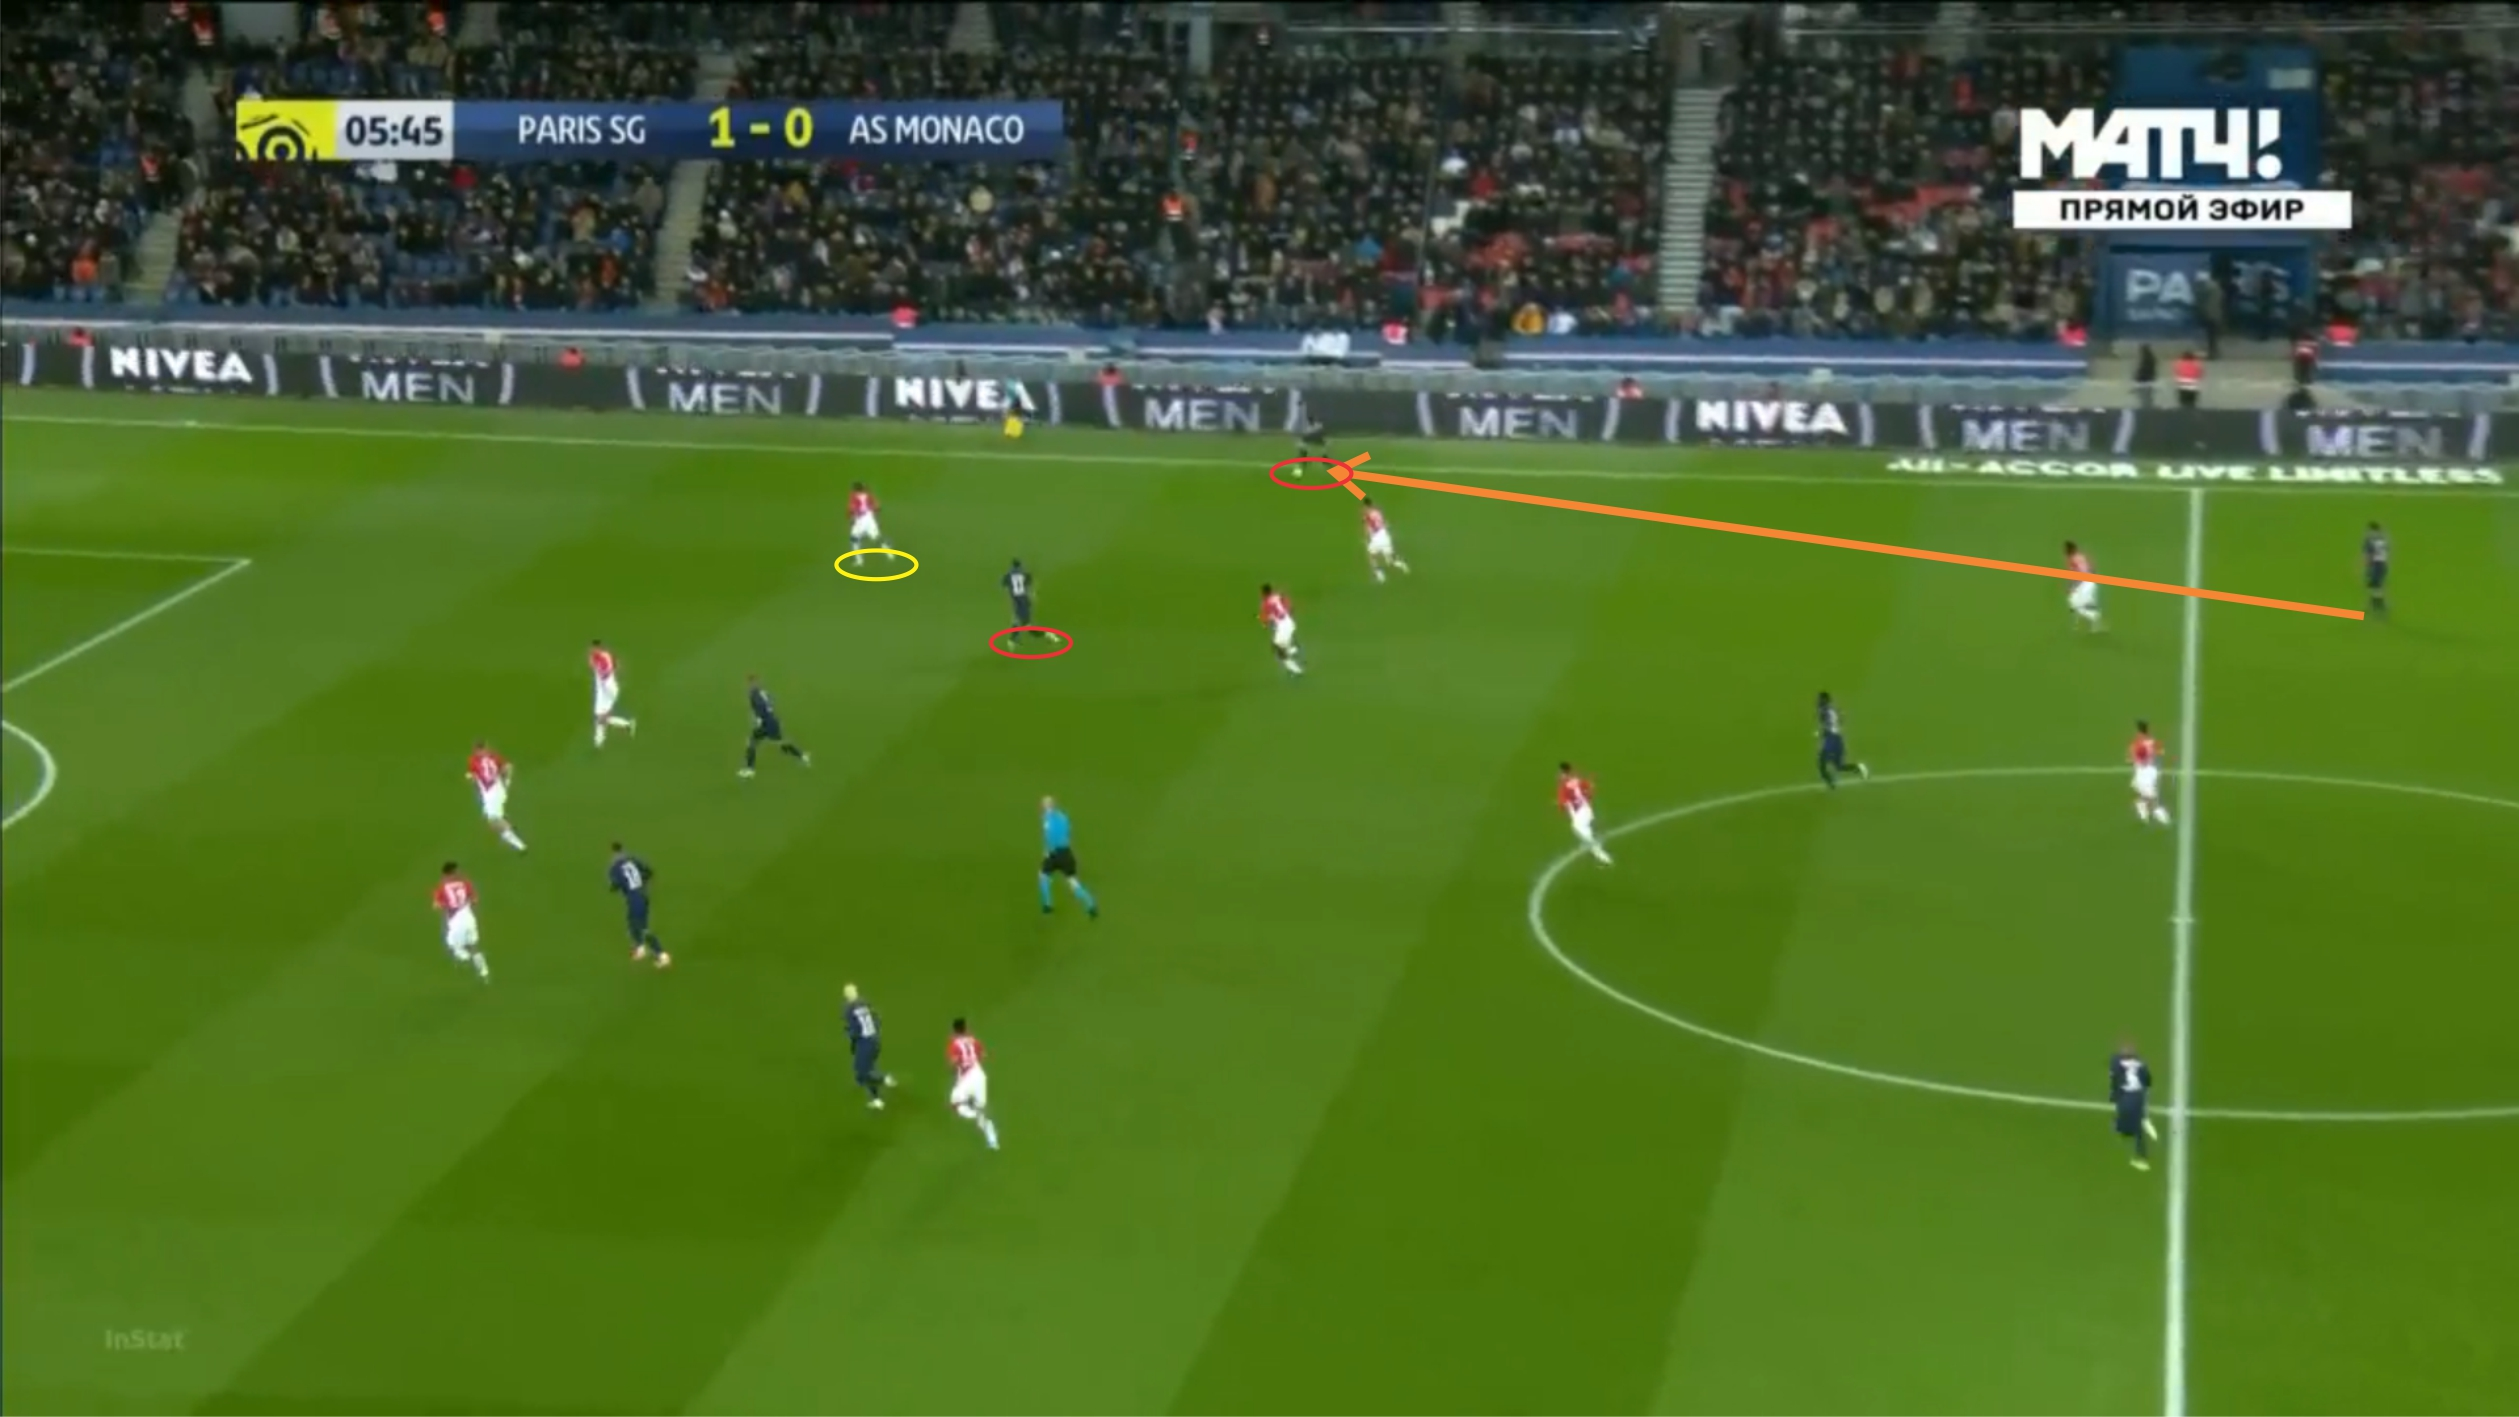 Thomas Tuchel at Paris Saint-Germain 2019/20 - tactical analysis tactics